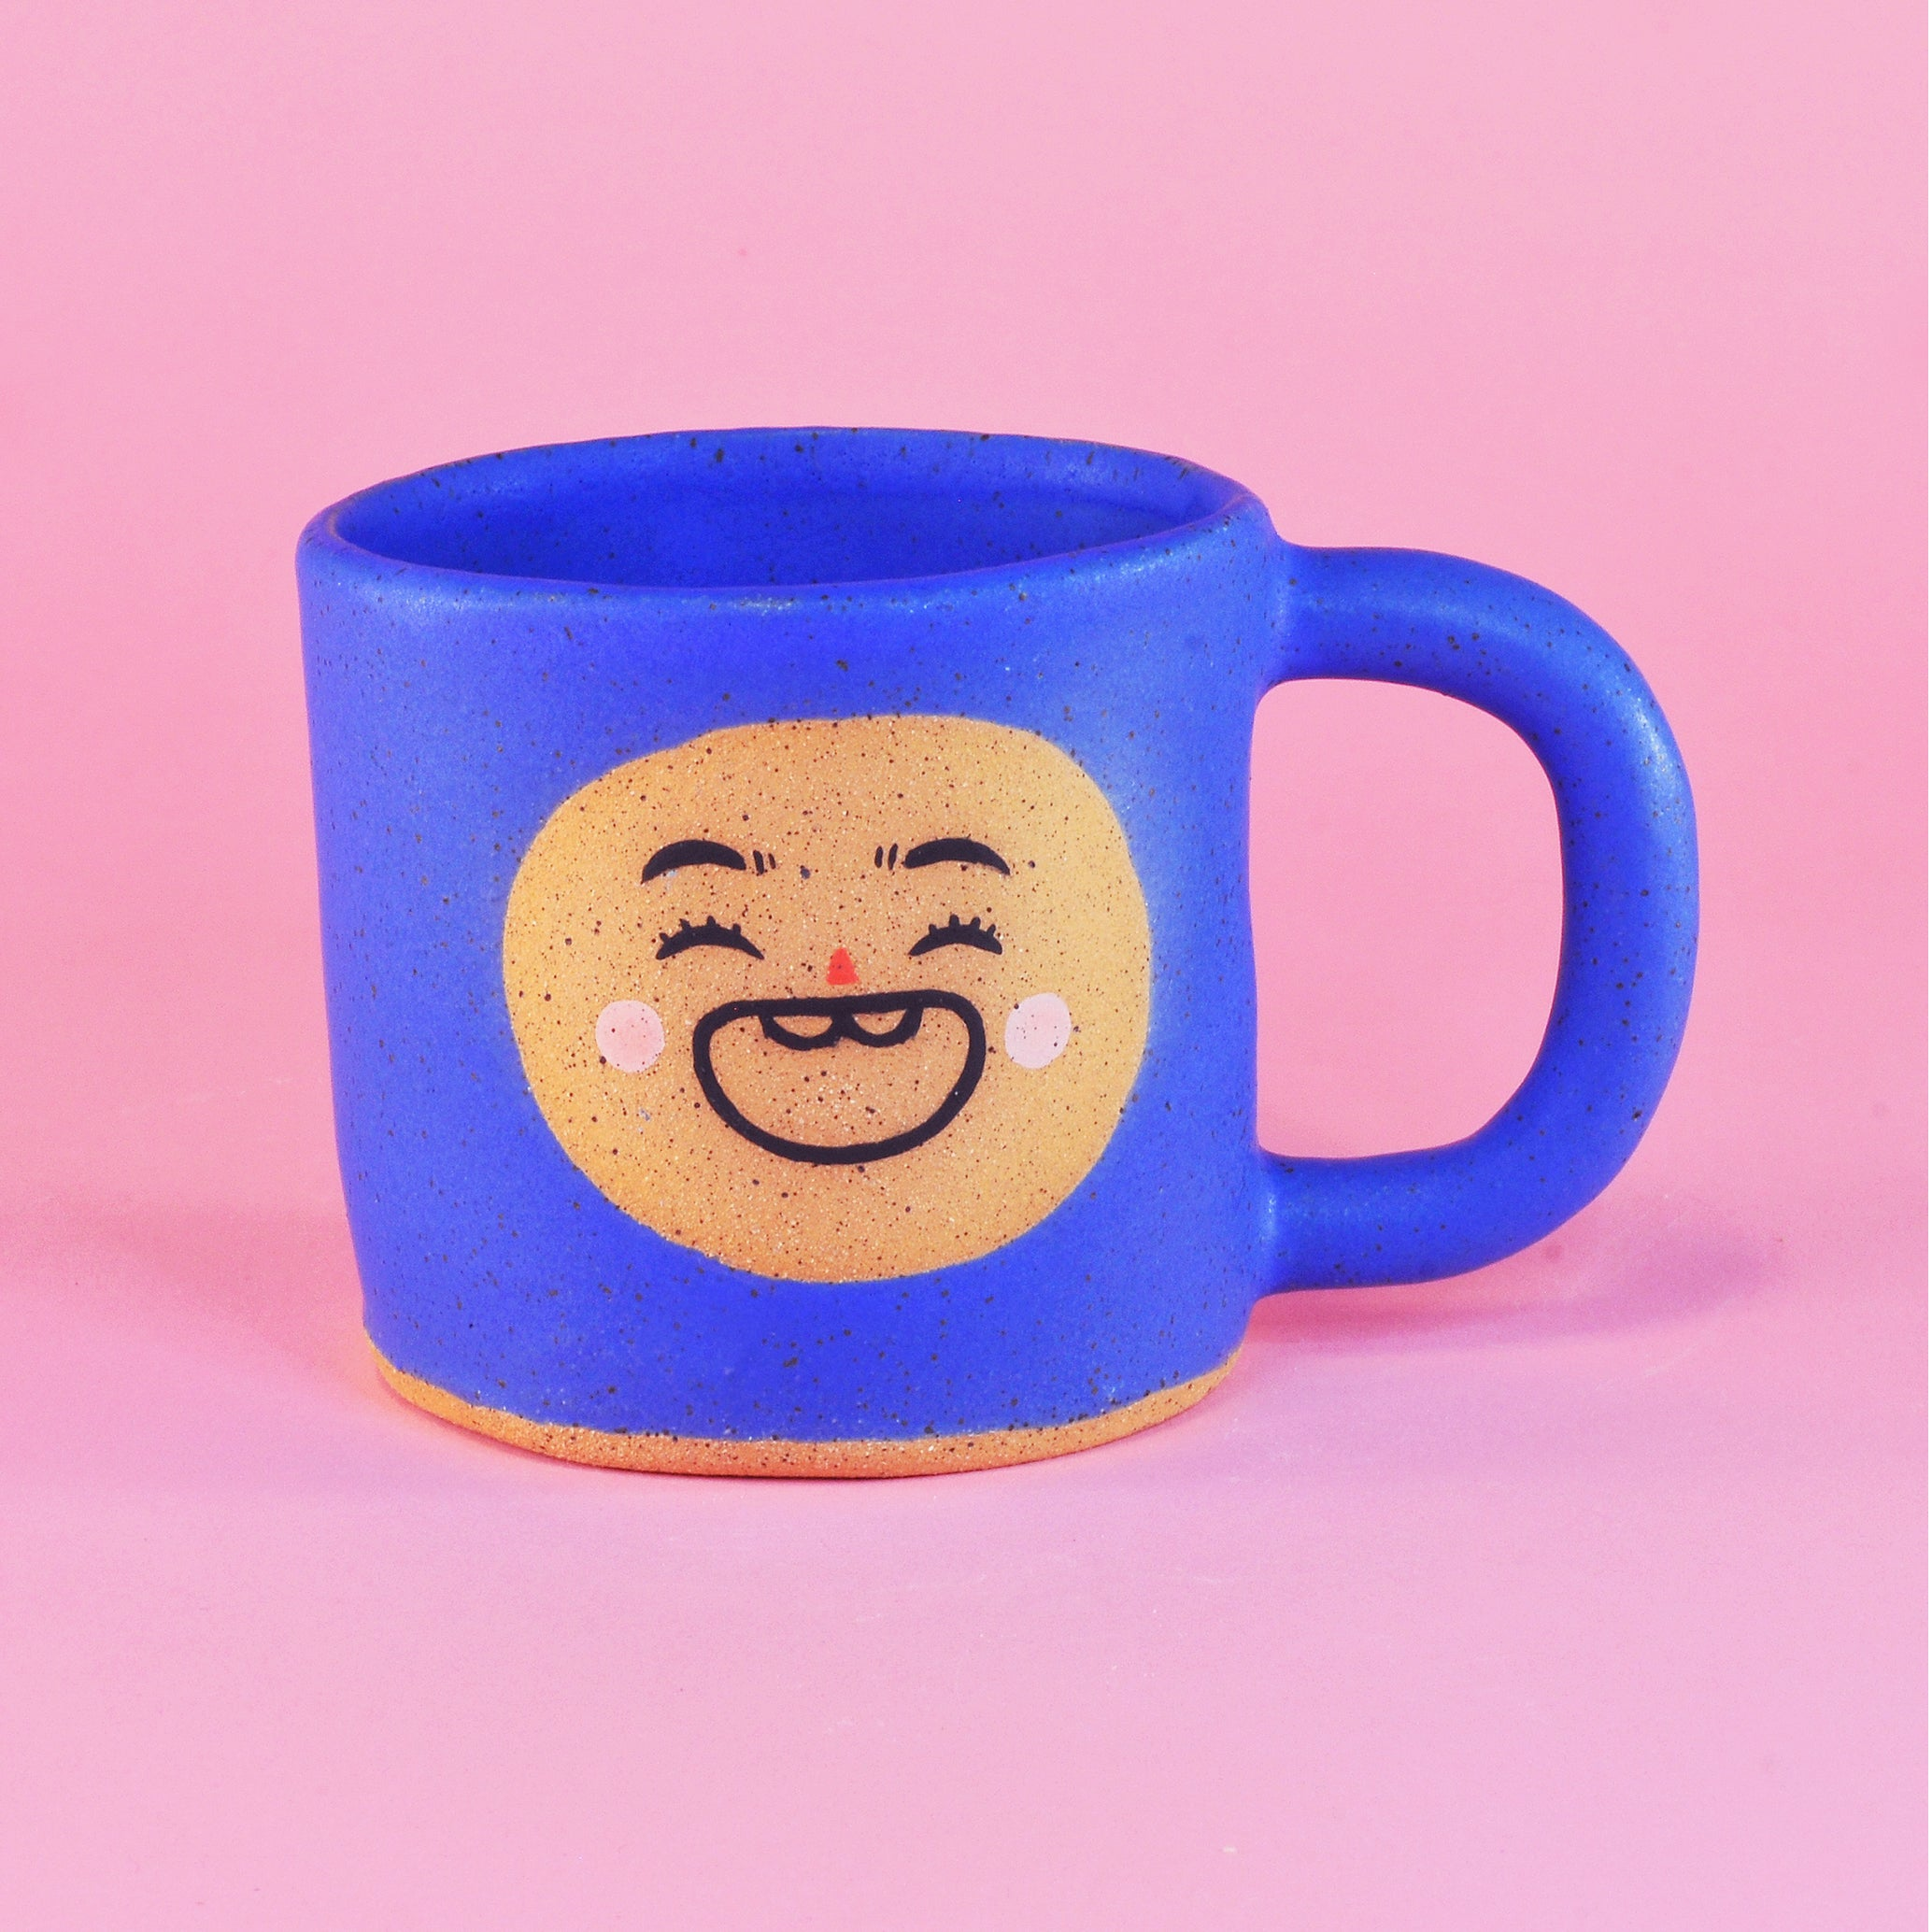 How Are You Feeling? Mug